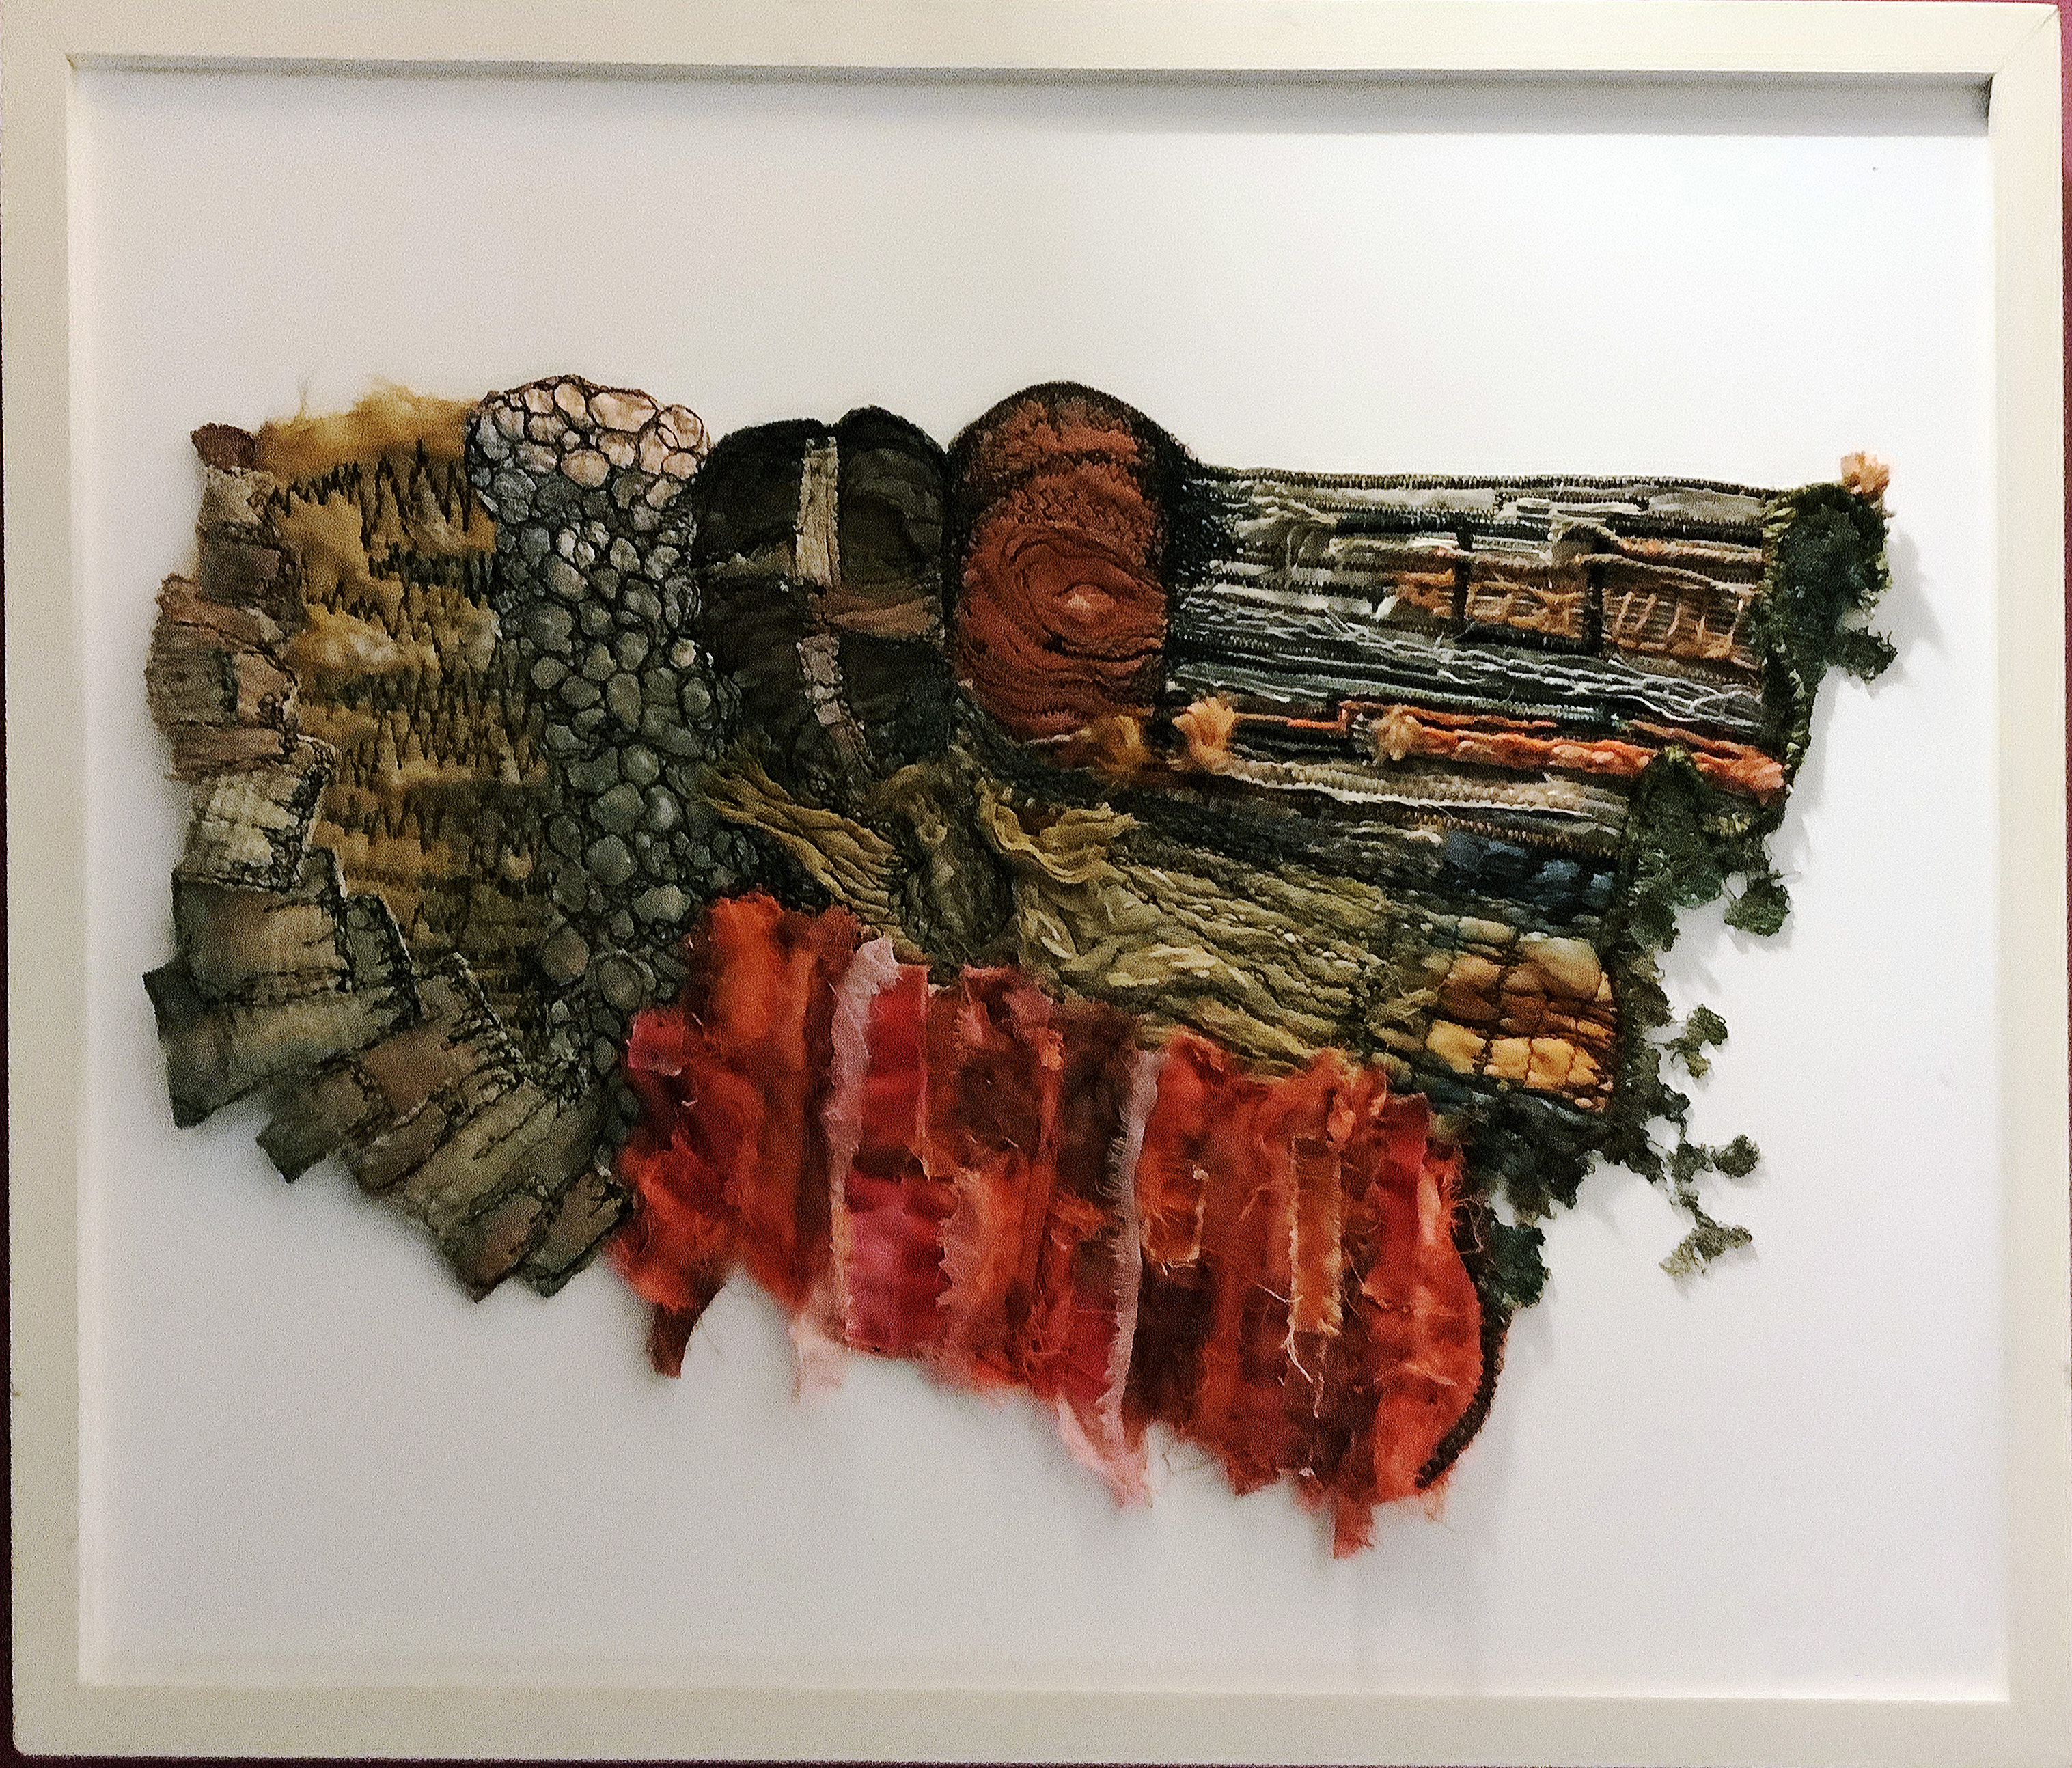 ABSTRACT SECTION OF A CLIFF FACE ANGLESEY by Brenda Brown, Bolton branch, hand dyed fabrics with couching, appliqué, fabric manipulation with hand and free machine stitching.